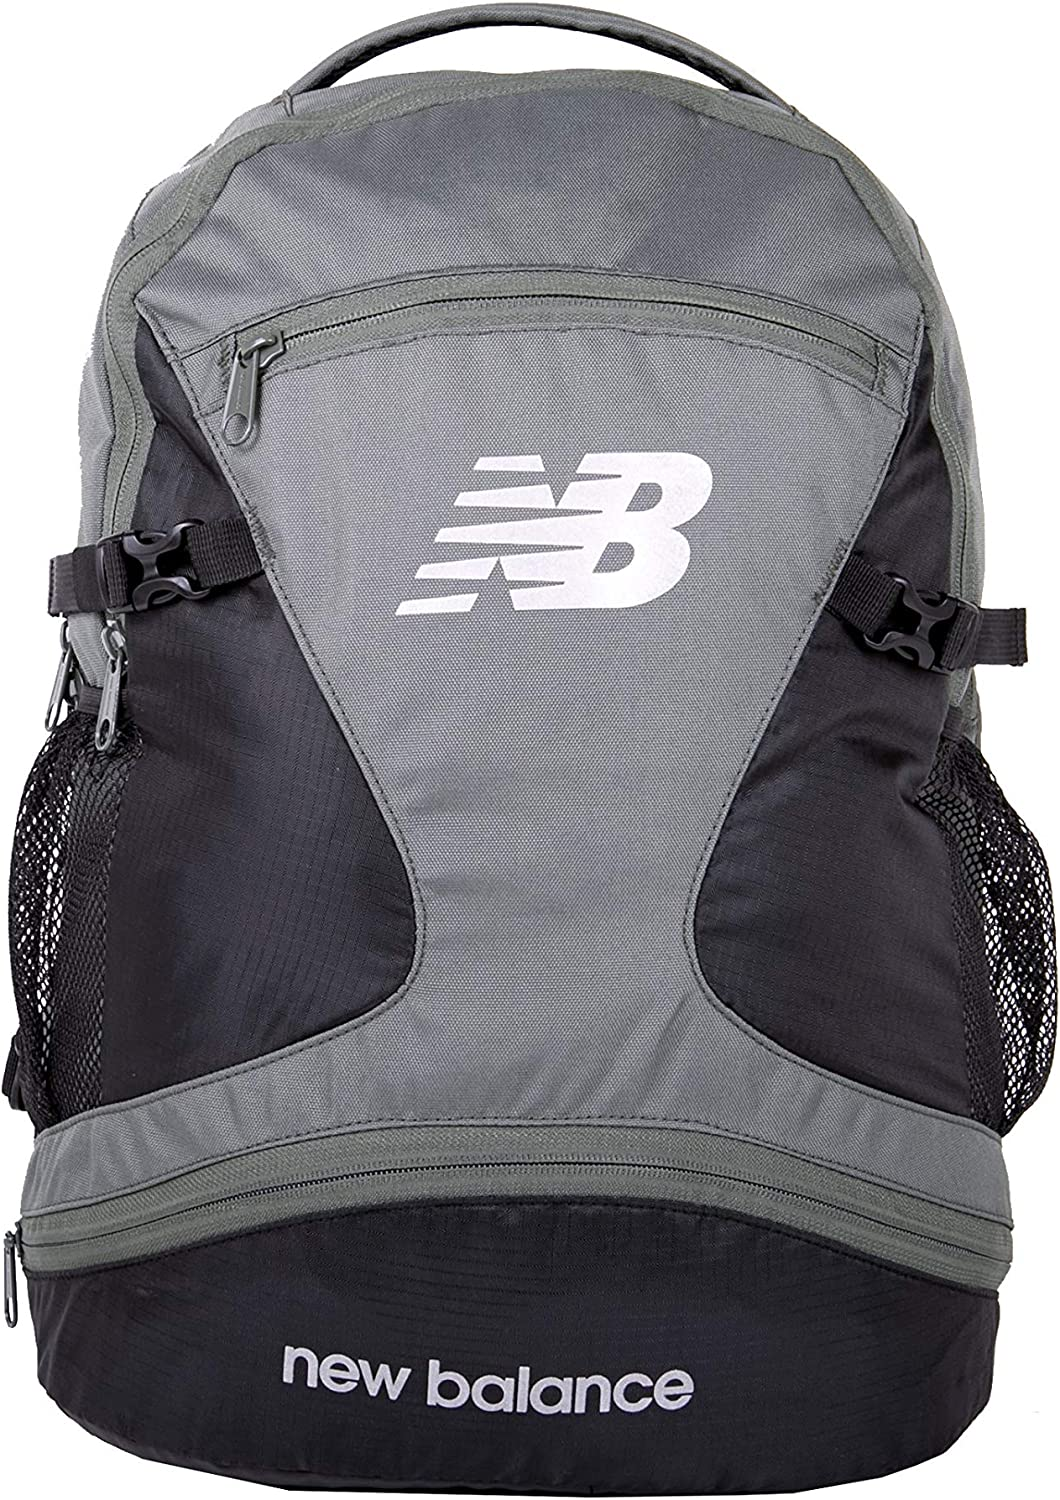 New Balance 28 Liter All-Purpose Champ Backpack